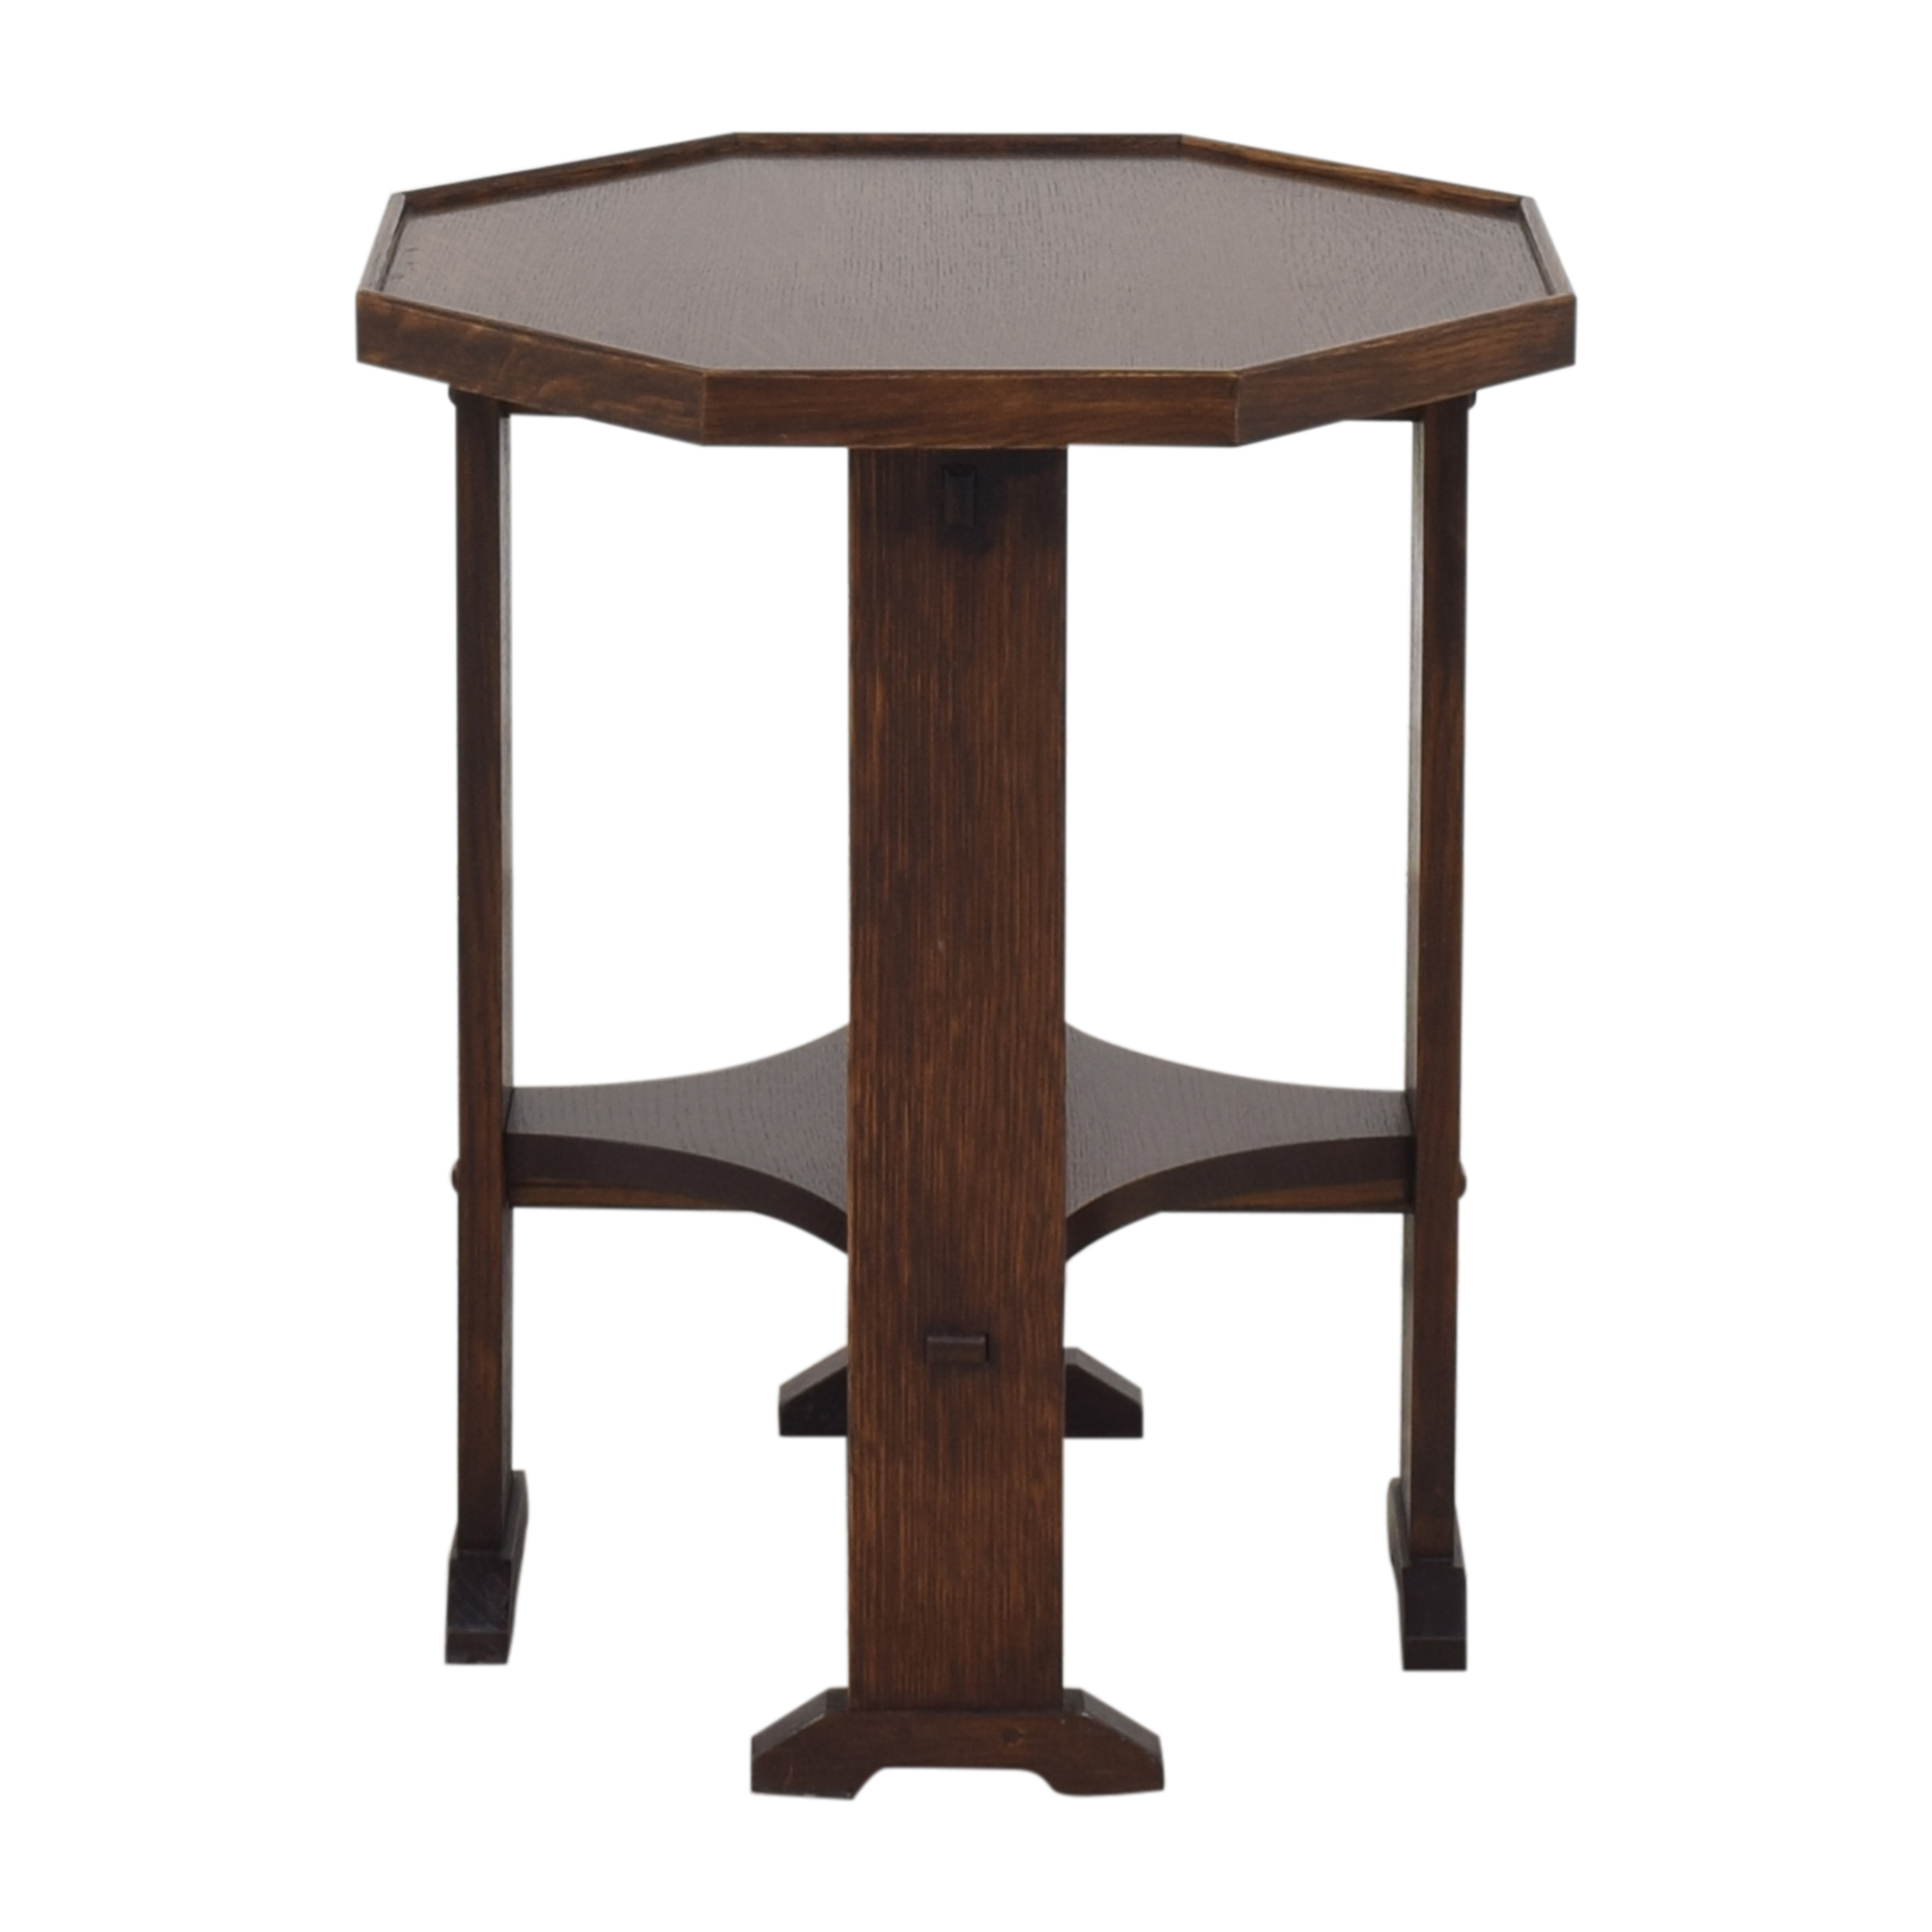 buy Stickley Furniture Hexagonal Side Table Stickley Furniture Tables